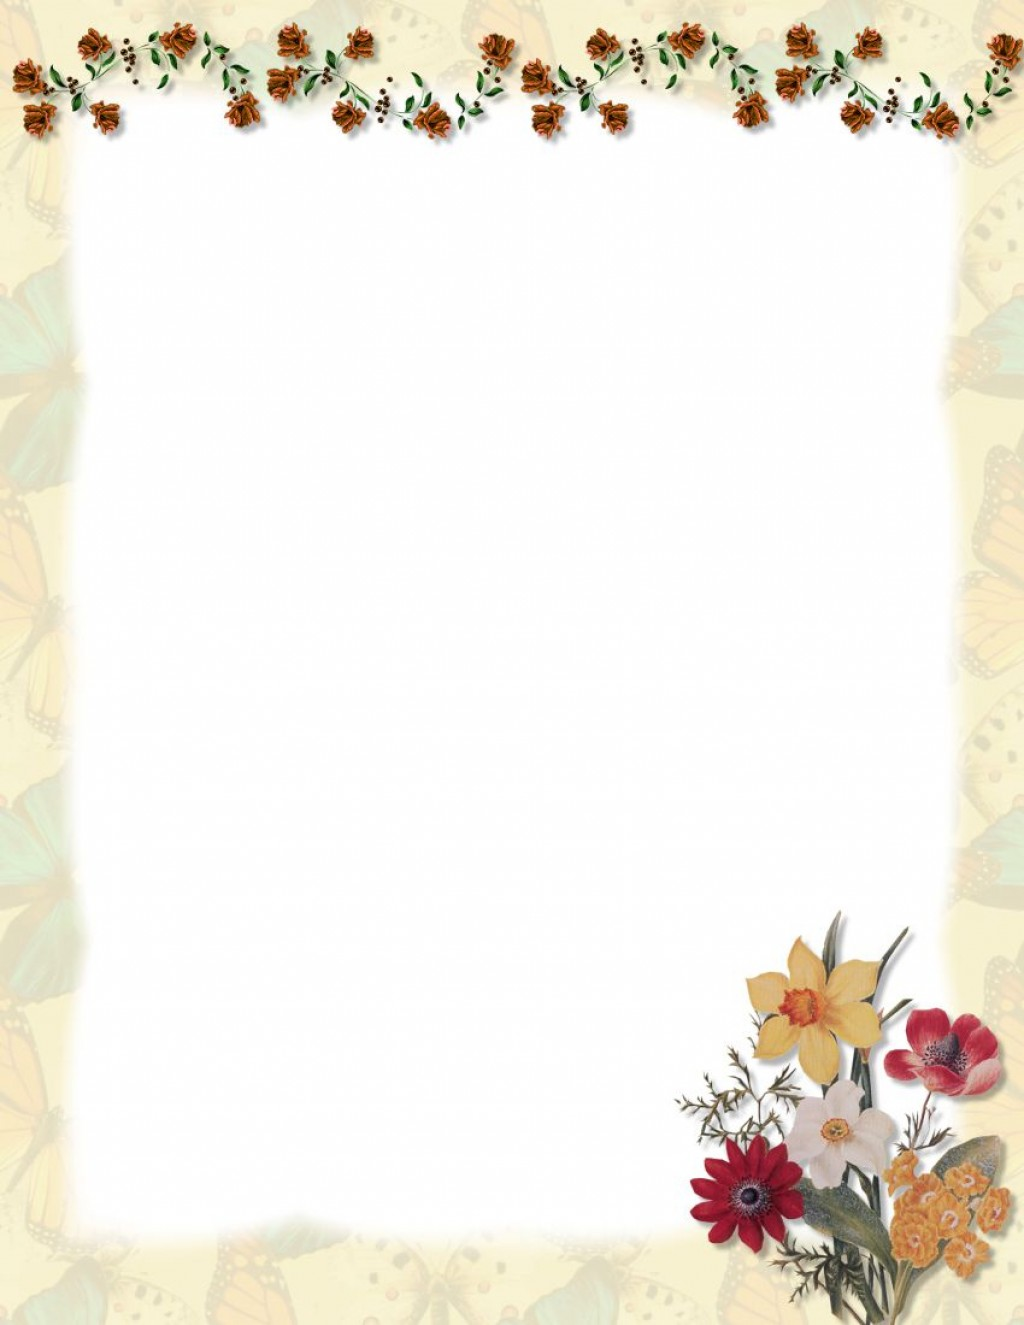 006 Stunning Stationary Template For Word Example  Lined Stationery Free DownloadLarge